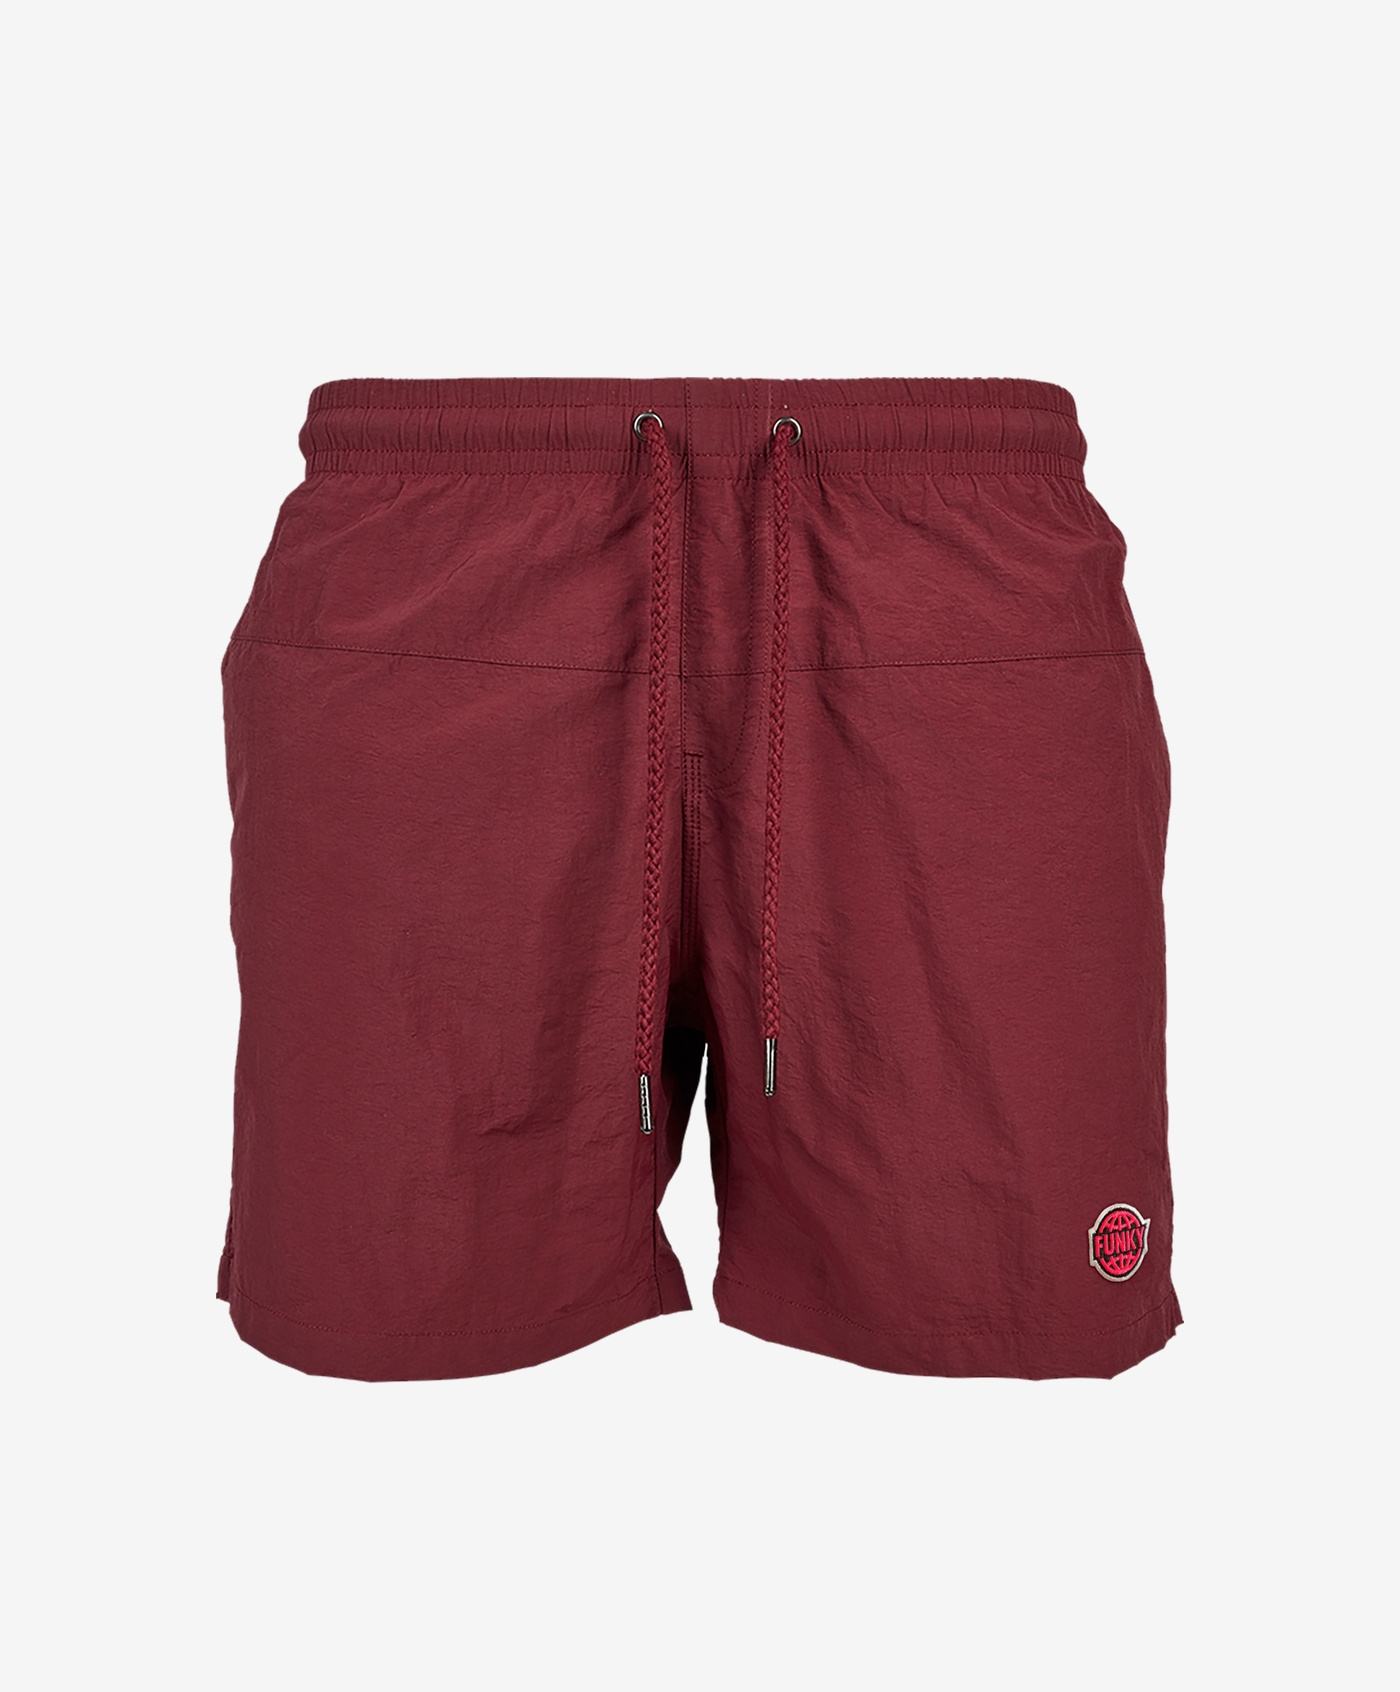 funky-logo-shorts-burgundy-front copia